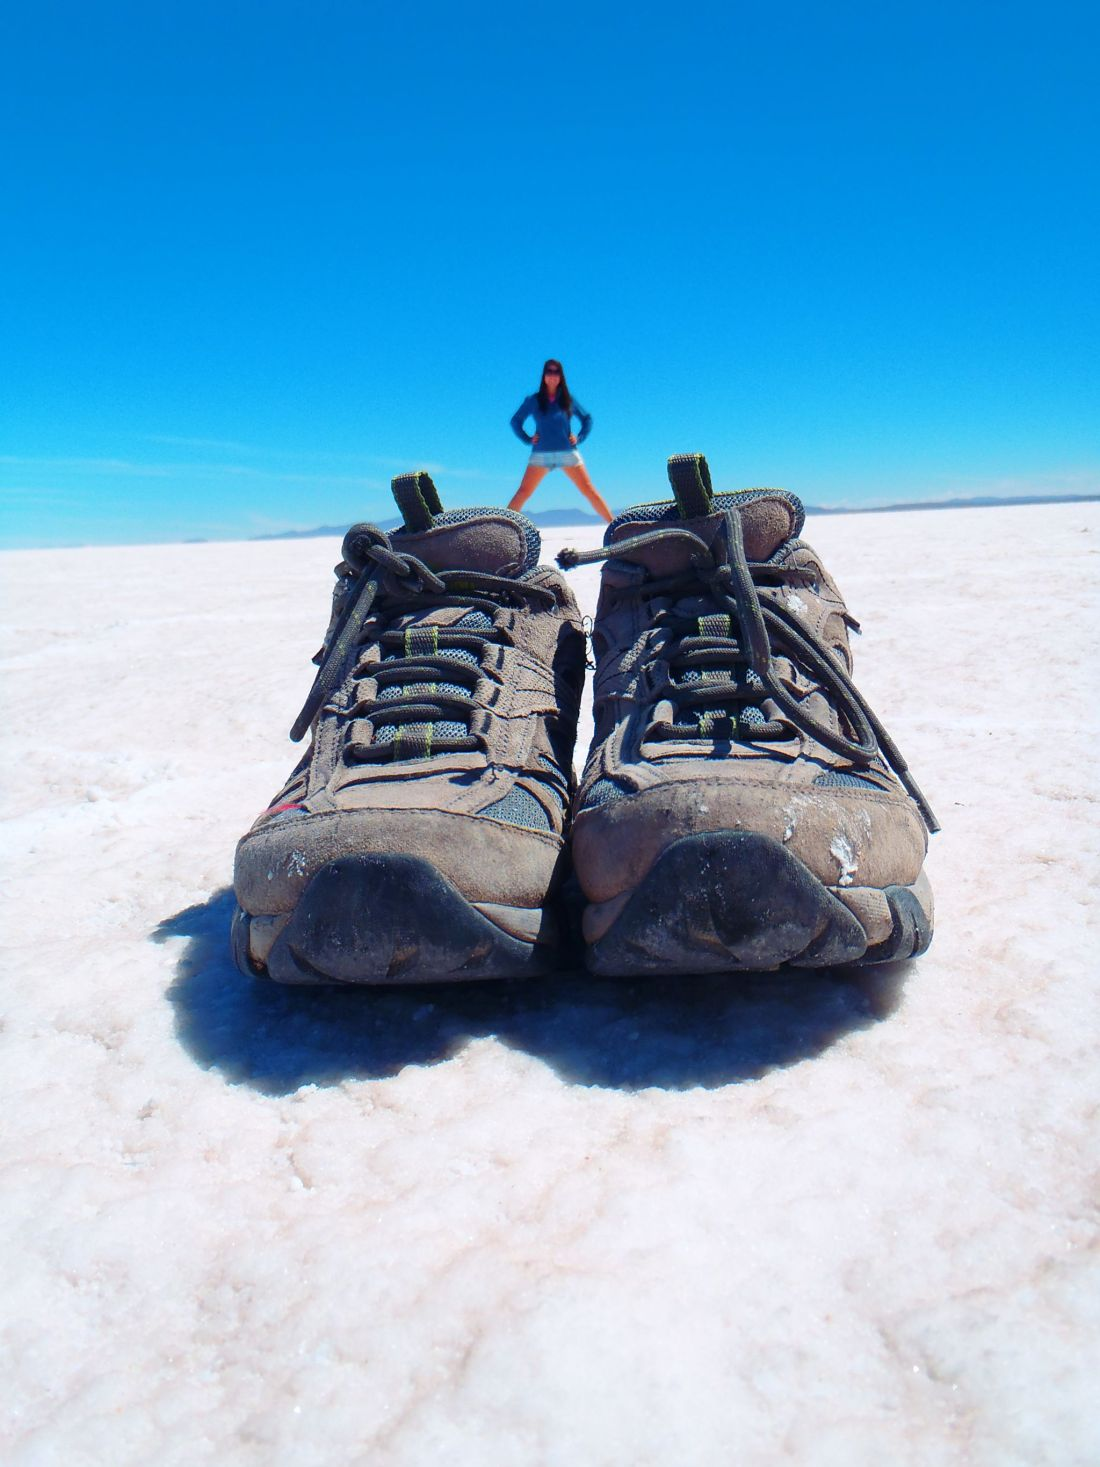 Shoe Photo Salar de Uyuni